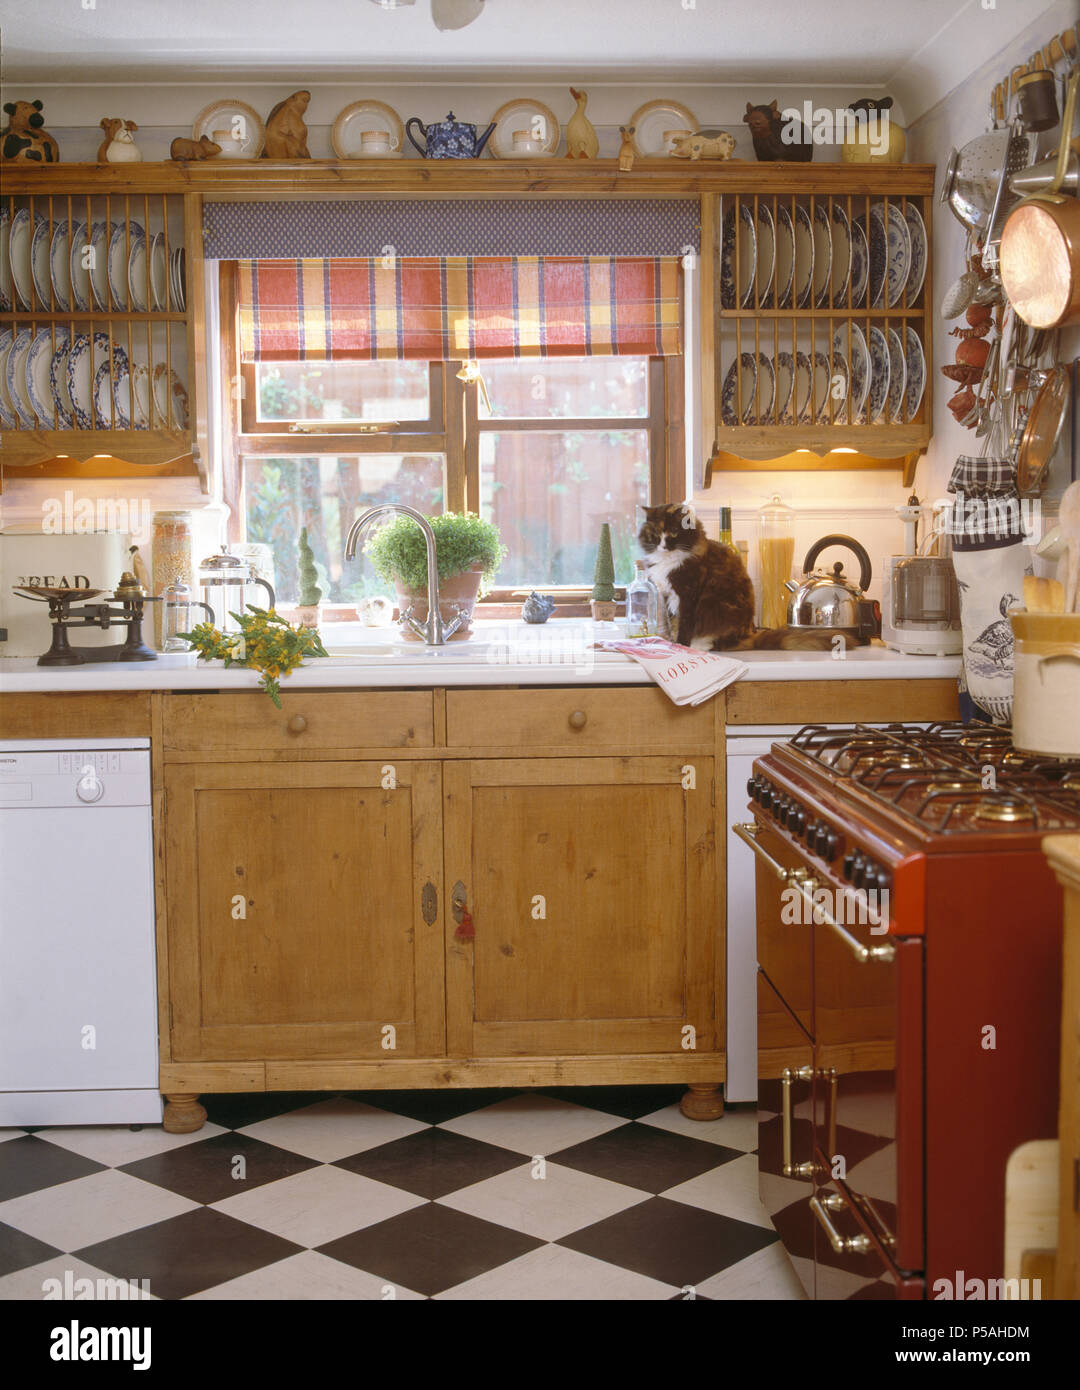 Wooden plate-racks either side of window with red blind above sink in cottage kitchen with black+white chequer-board floor - Stock Image